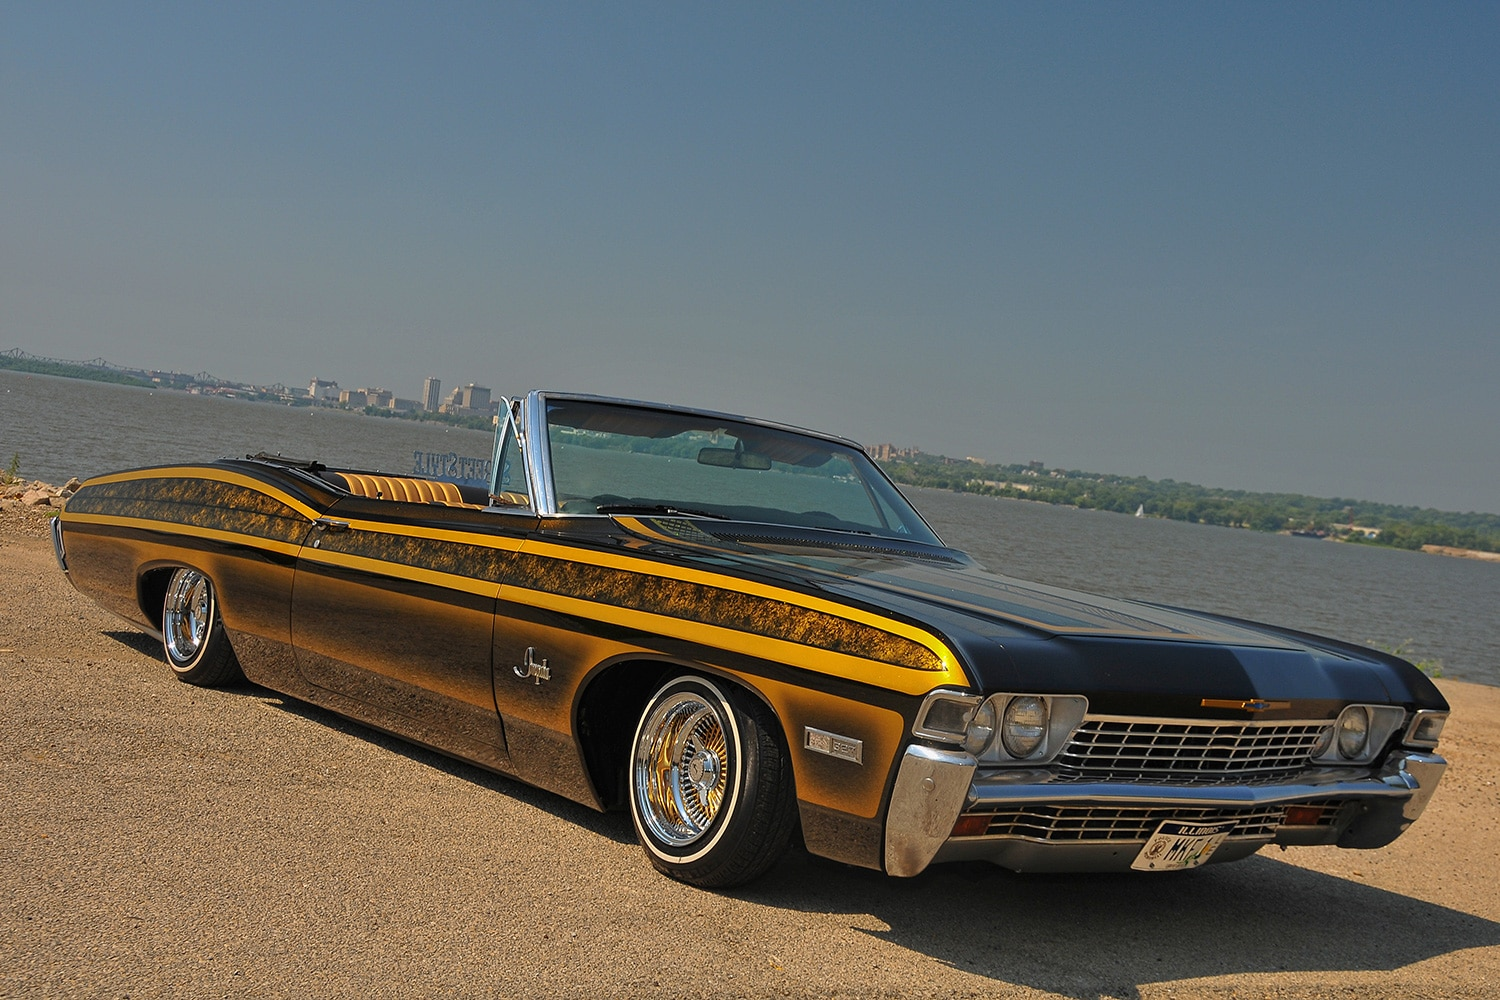 1968 Chevrolet Impala Lethal Weapon